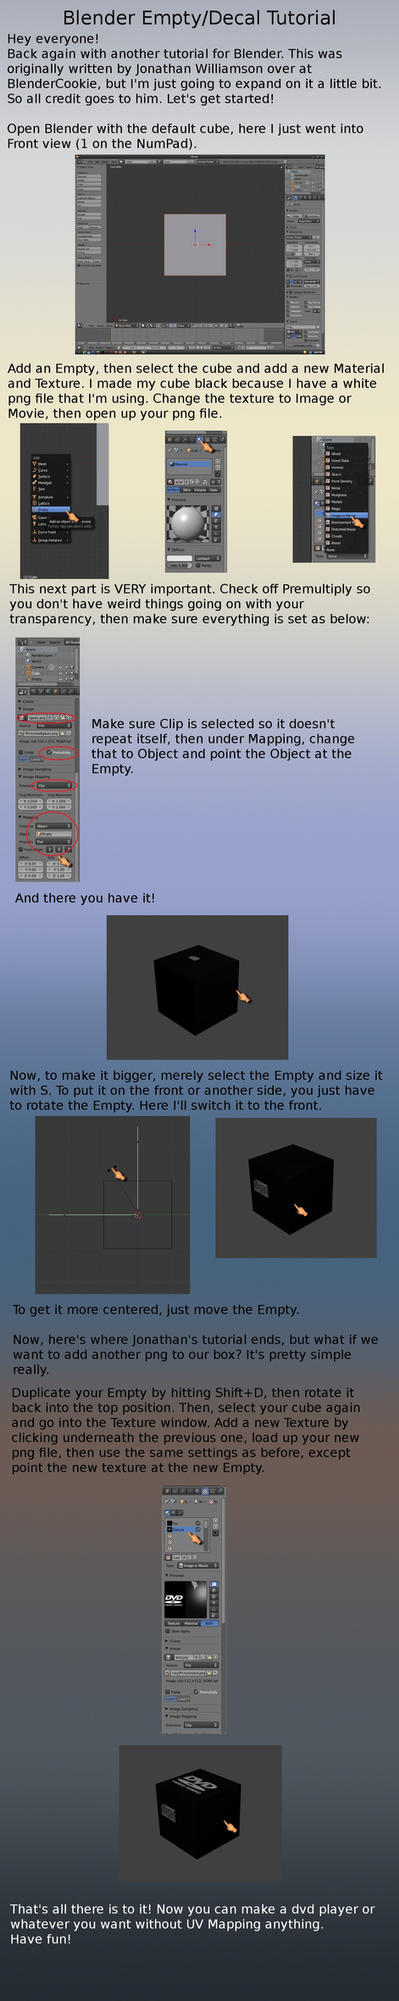 Blender Empty Decal Tutorial by VickyM72